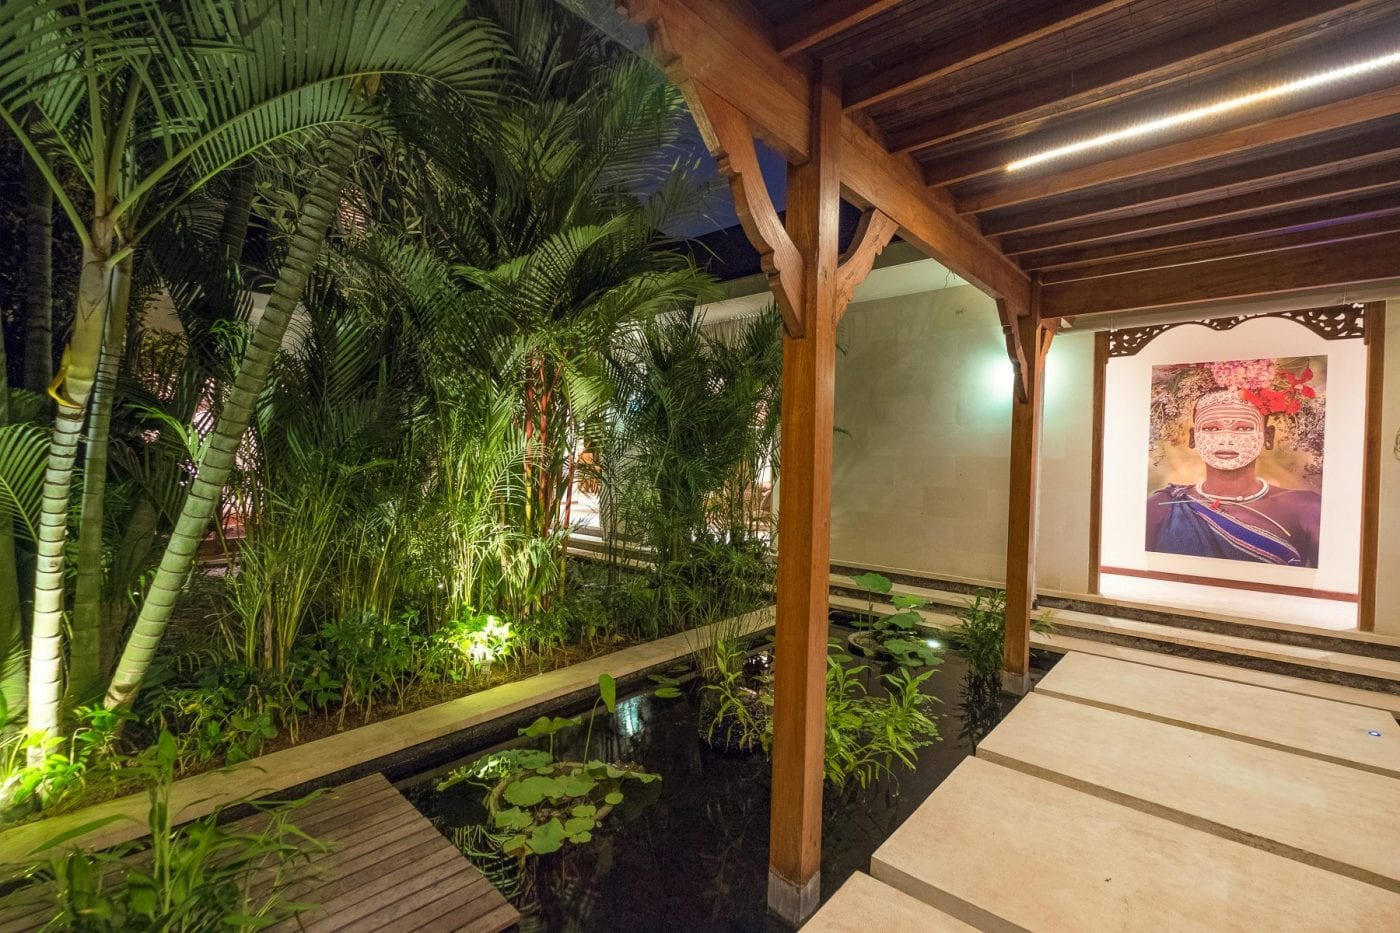 Bali retreats, Beautiful Bliss Sanctuary For Women, New Canggu Sanctuary, relaxing beautiful pond walkway, stunning artwork